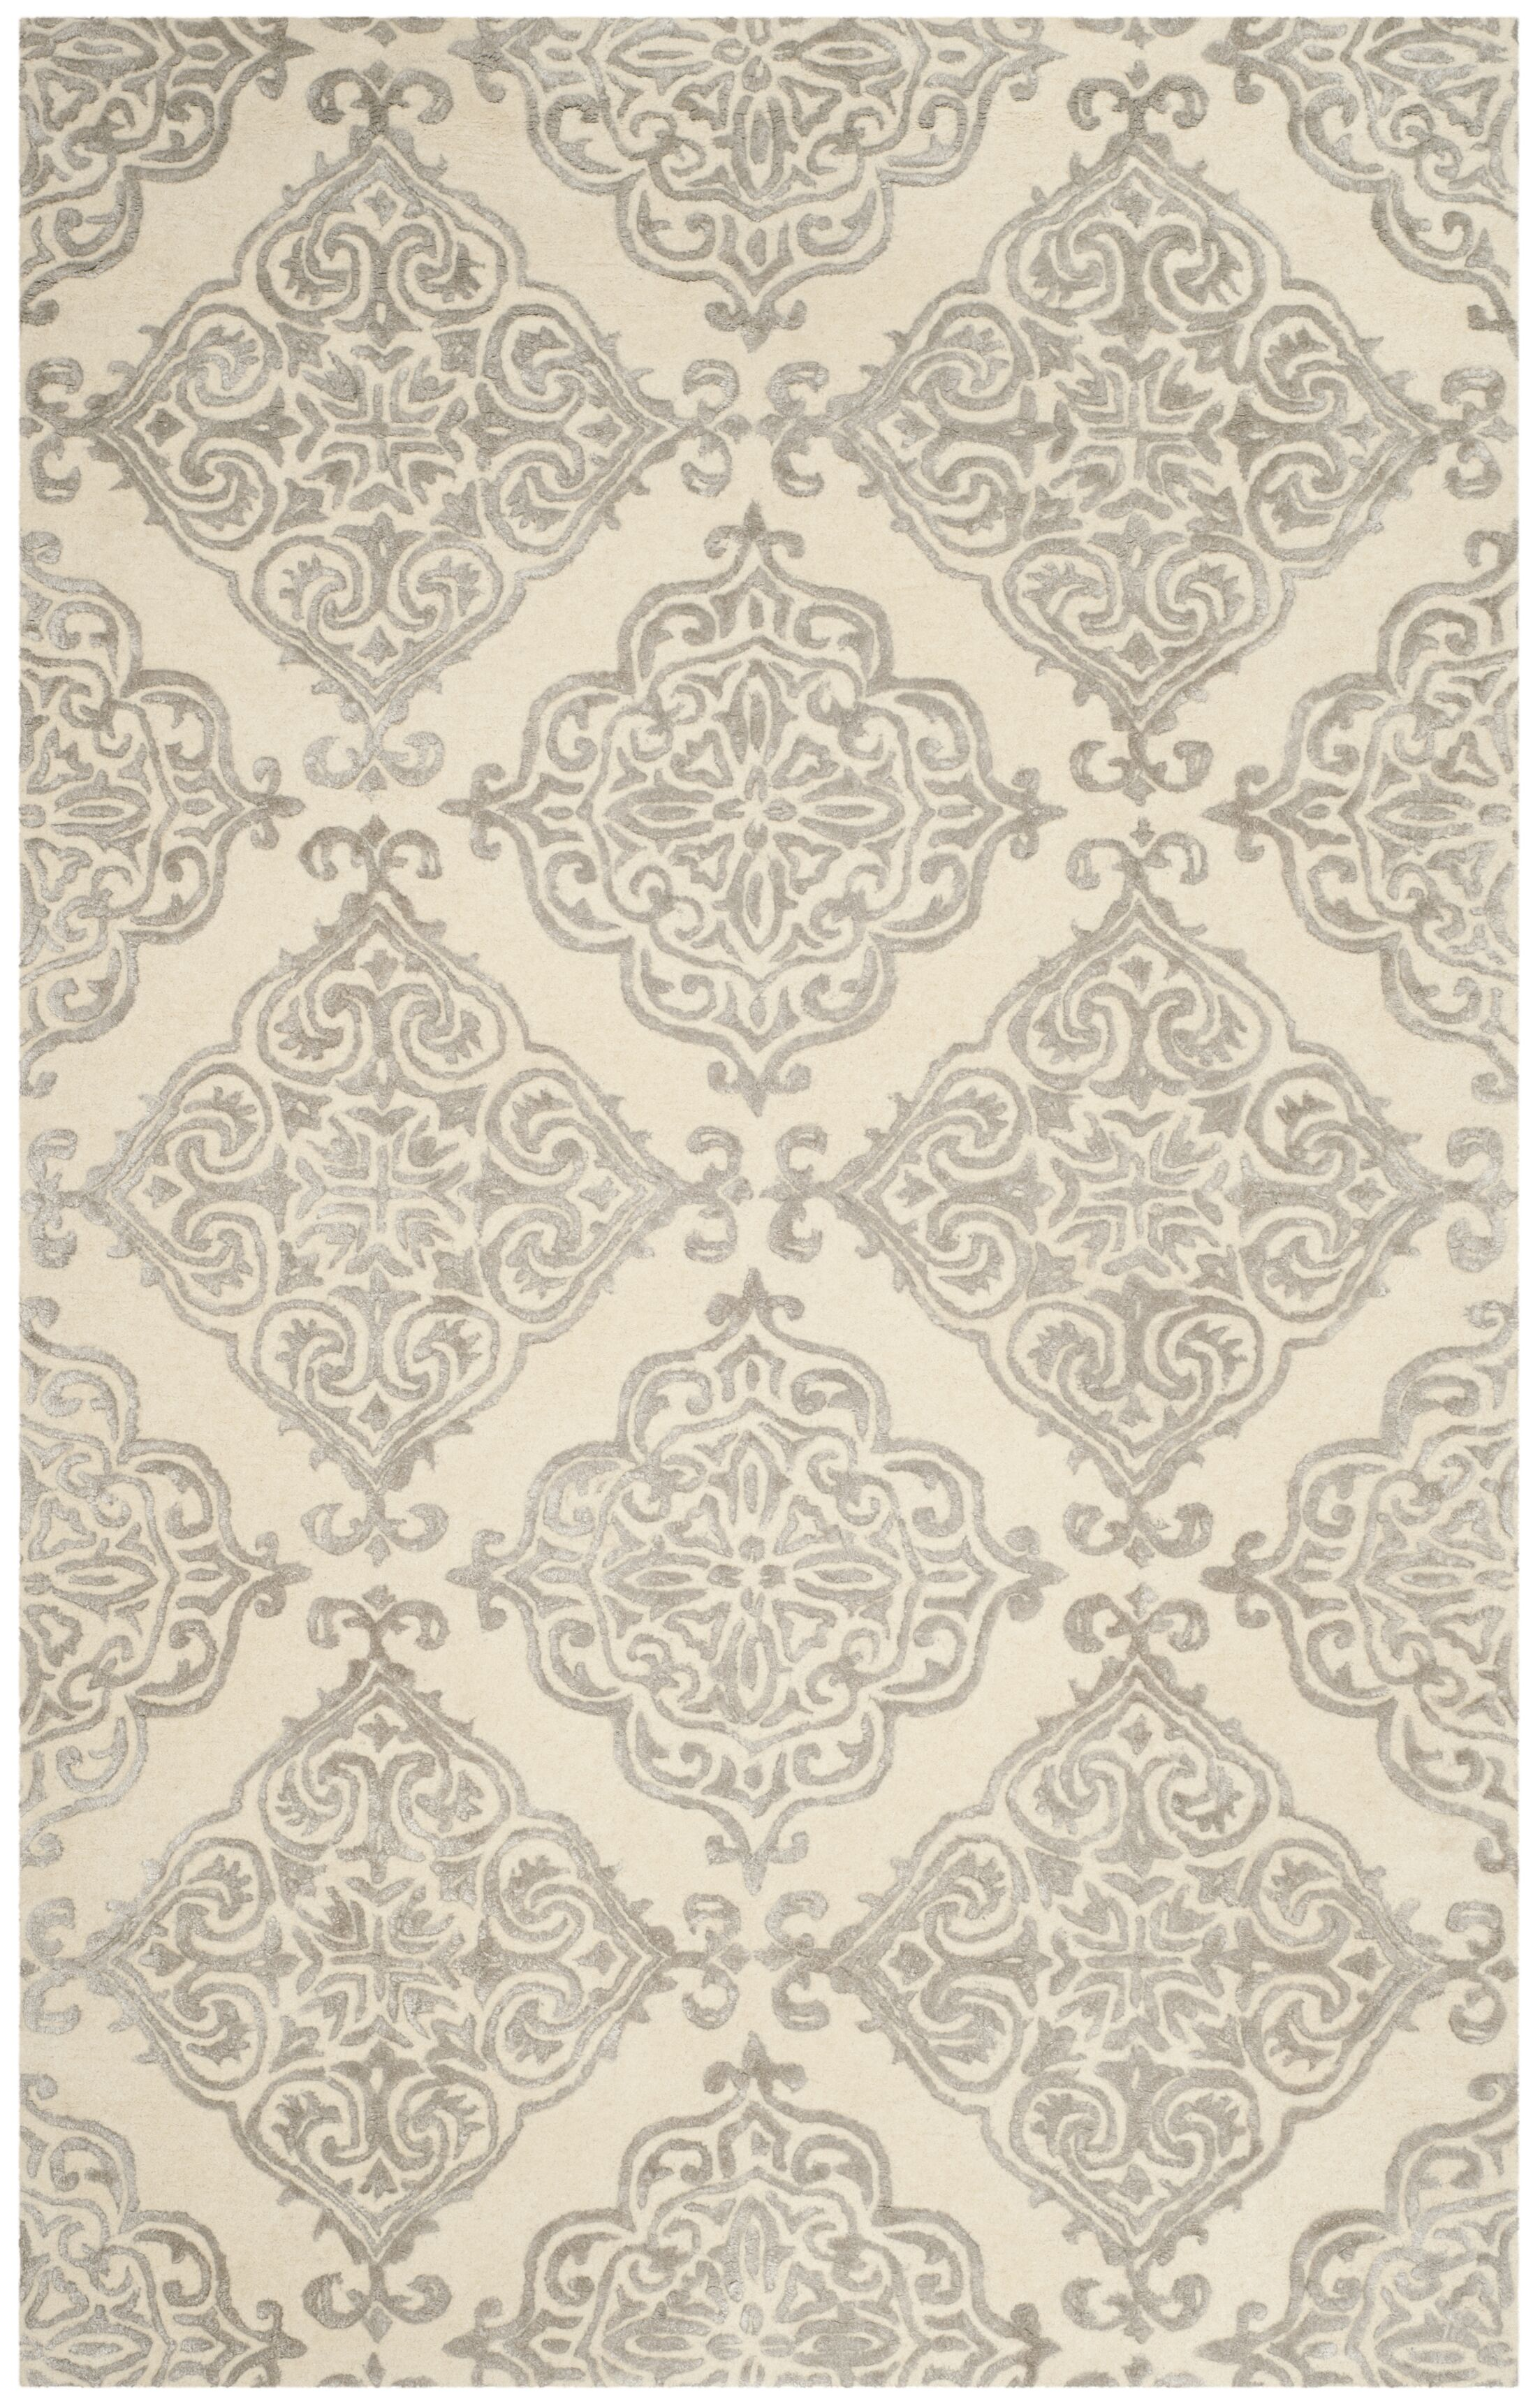 Bernon Hand Tufted Ivory Area Rug Rug Size: Rectangle 4' x 6'